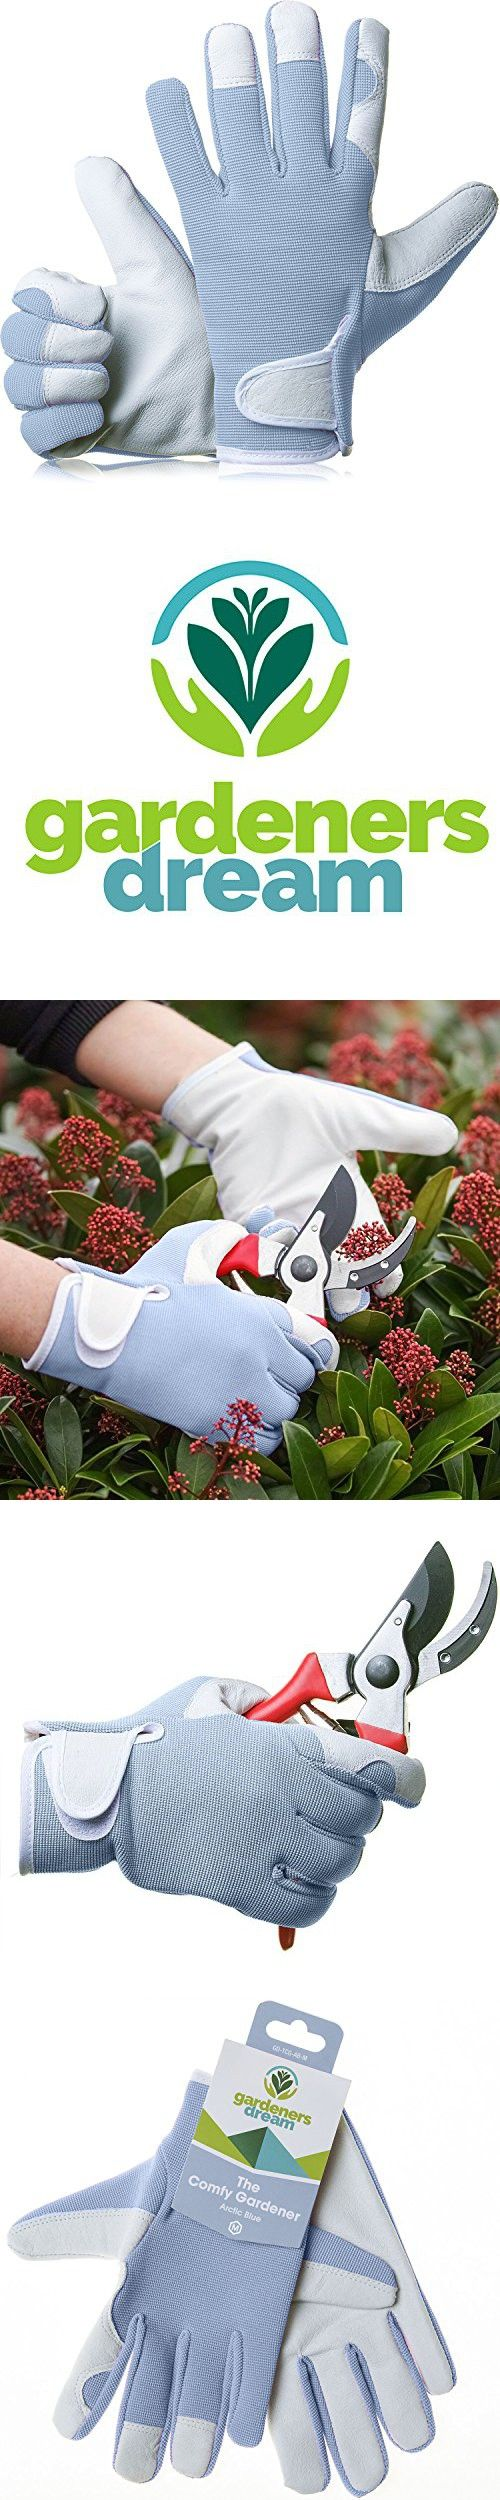 Good quality leather work gloves - Gardenersdream Leather Gardening Work Gloves Medium Comfy Slim Fit Premium Quality Gloves